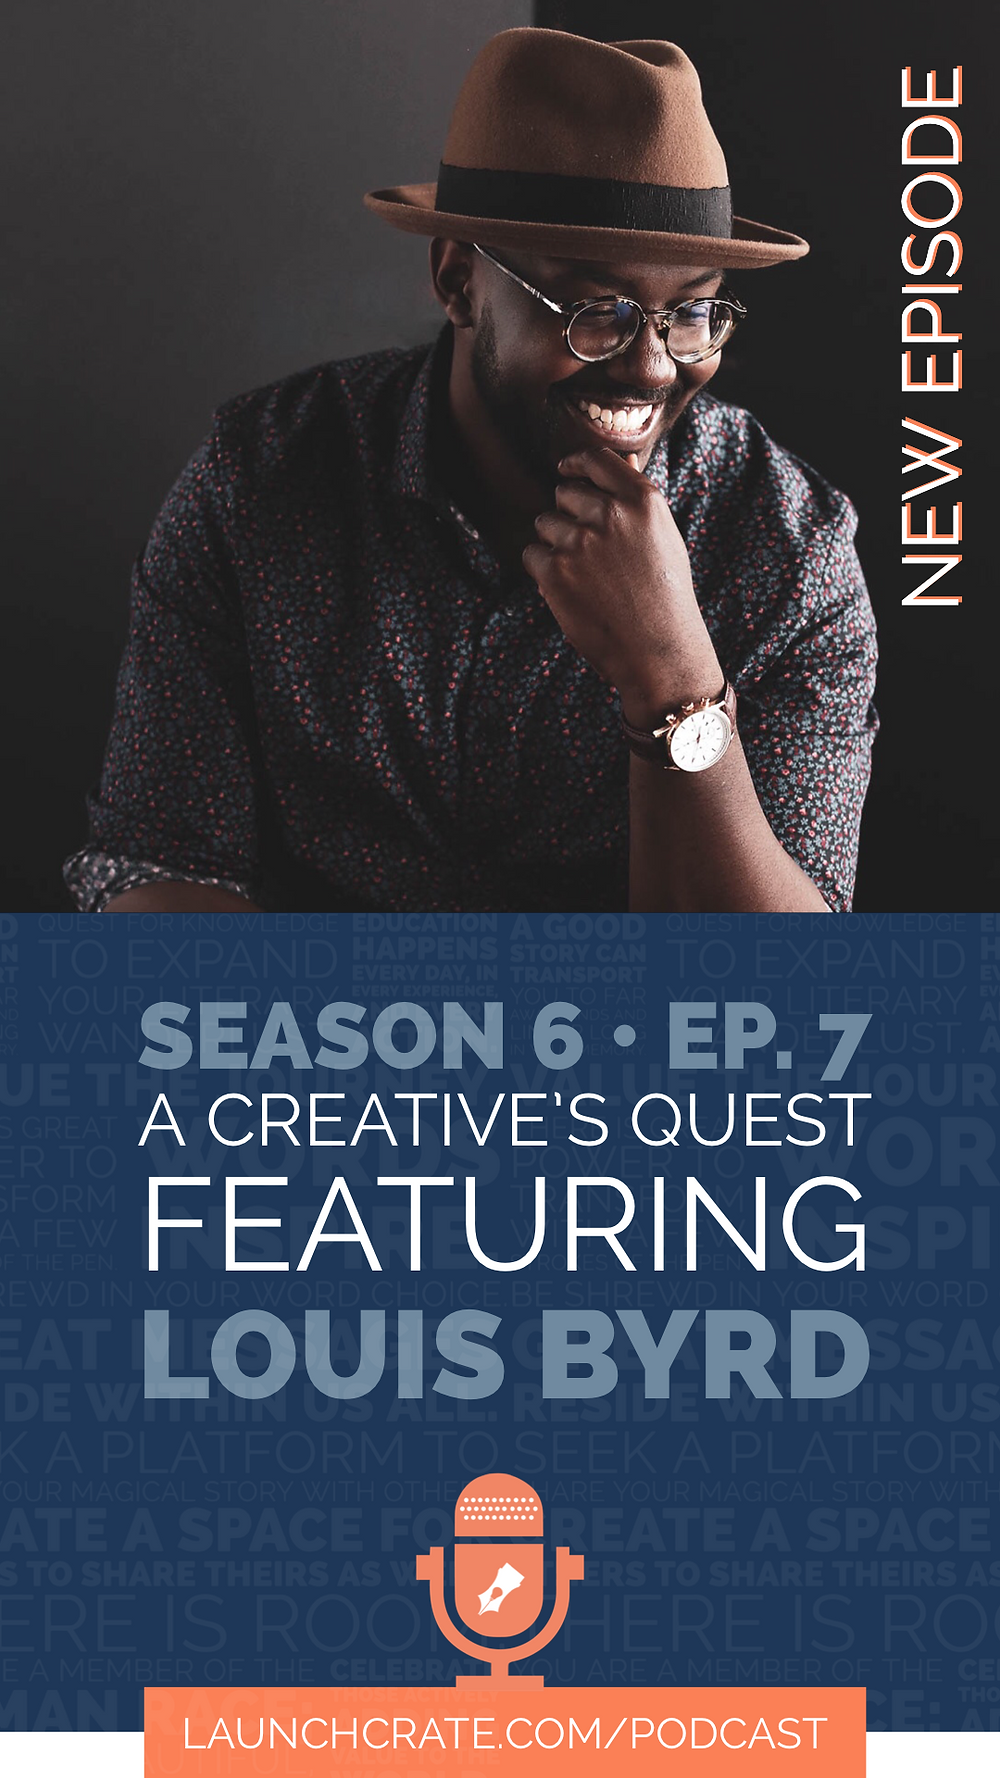 Podcast Season 6, Episode 7, with Louis Byrd